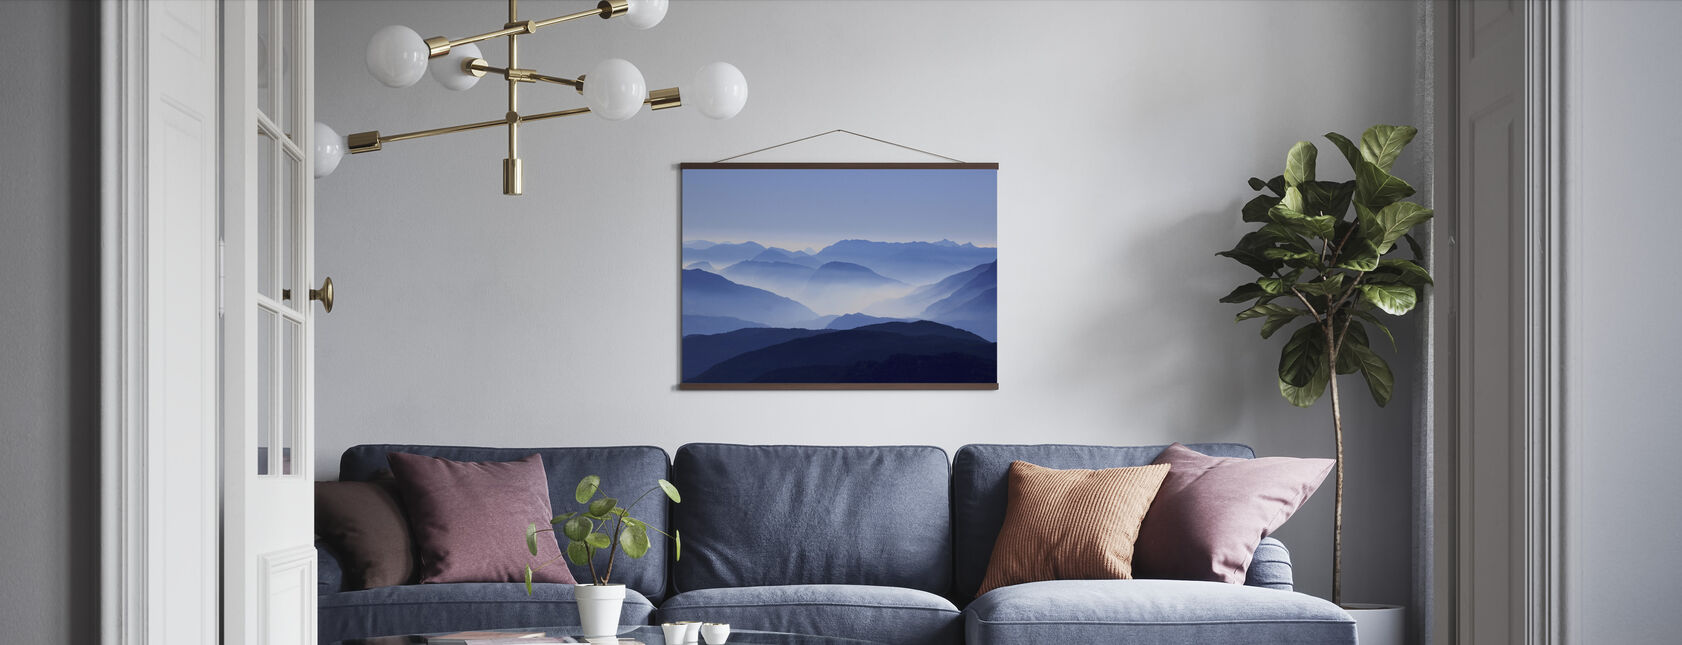 Blue Mountain View - Poster - Living Room